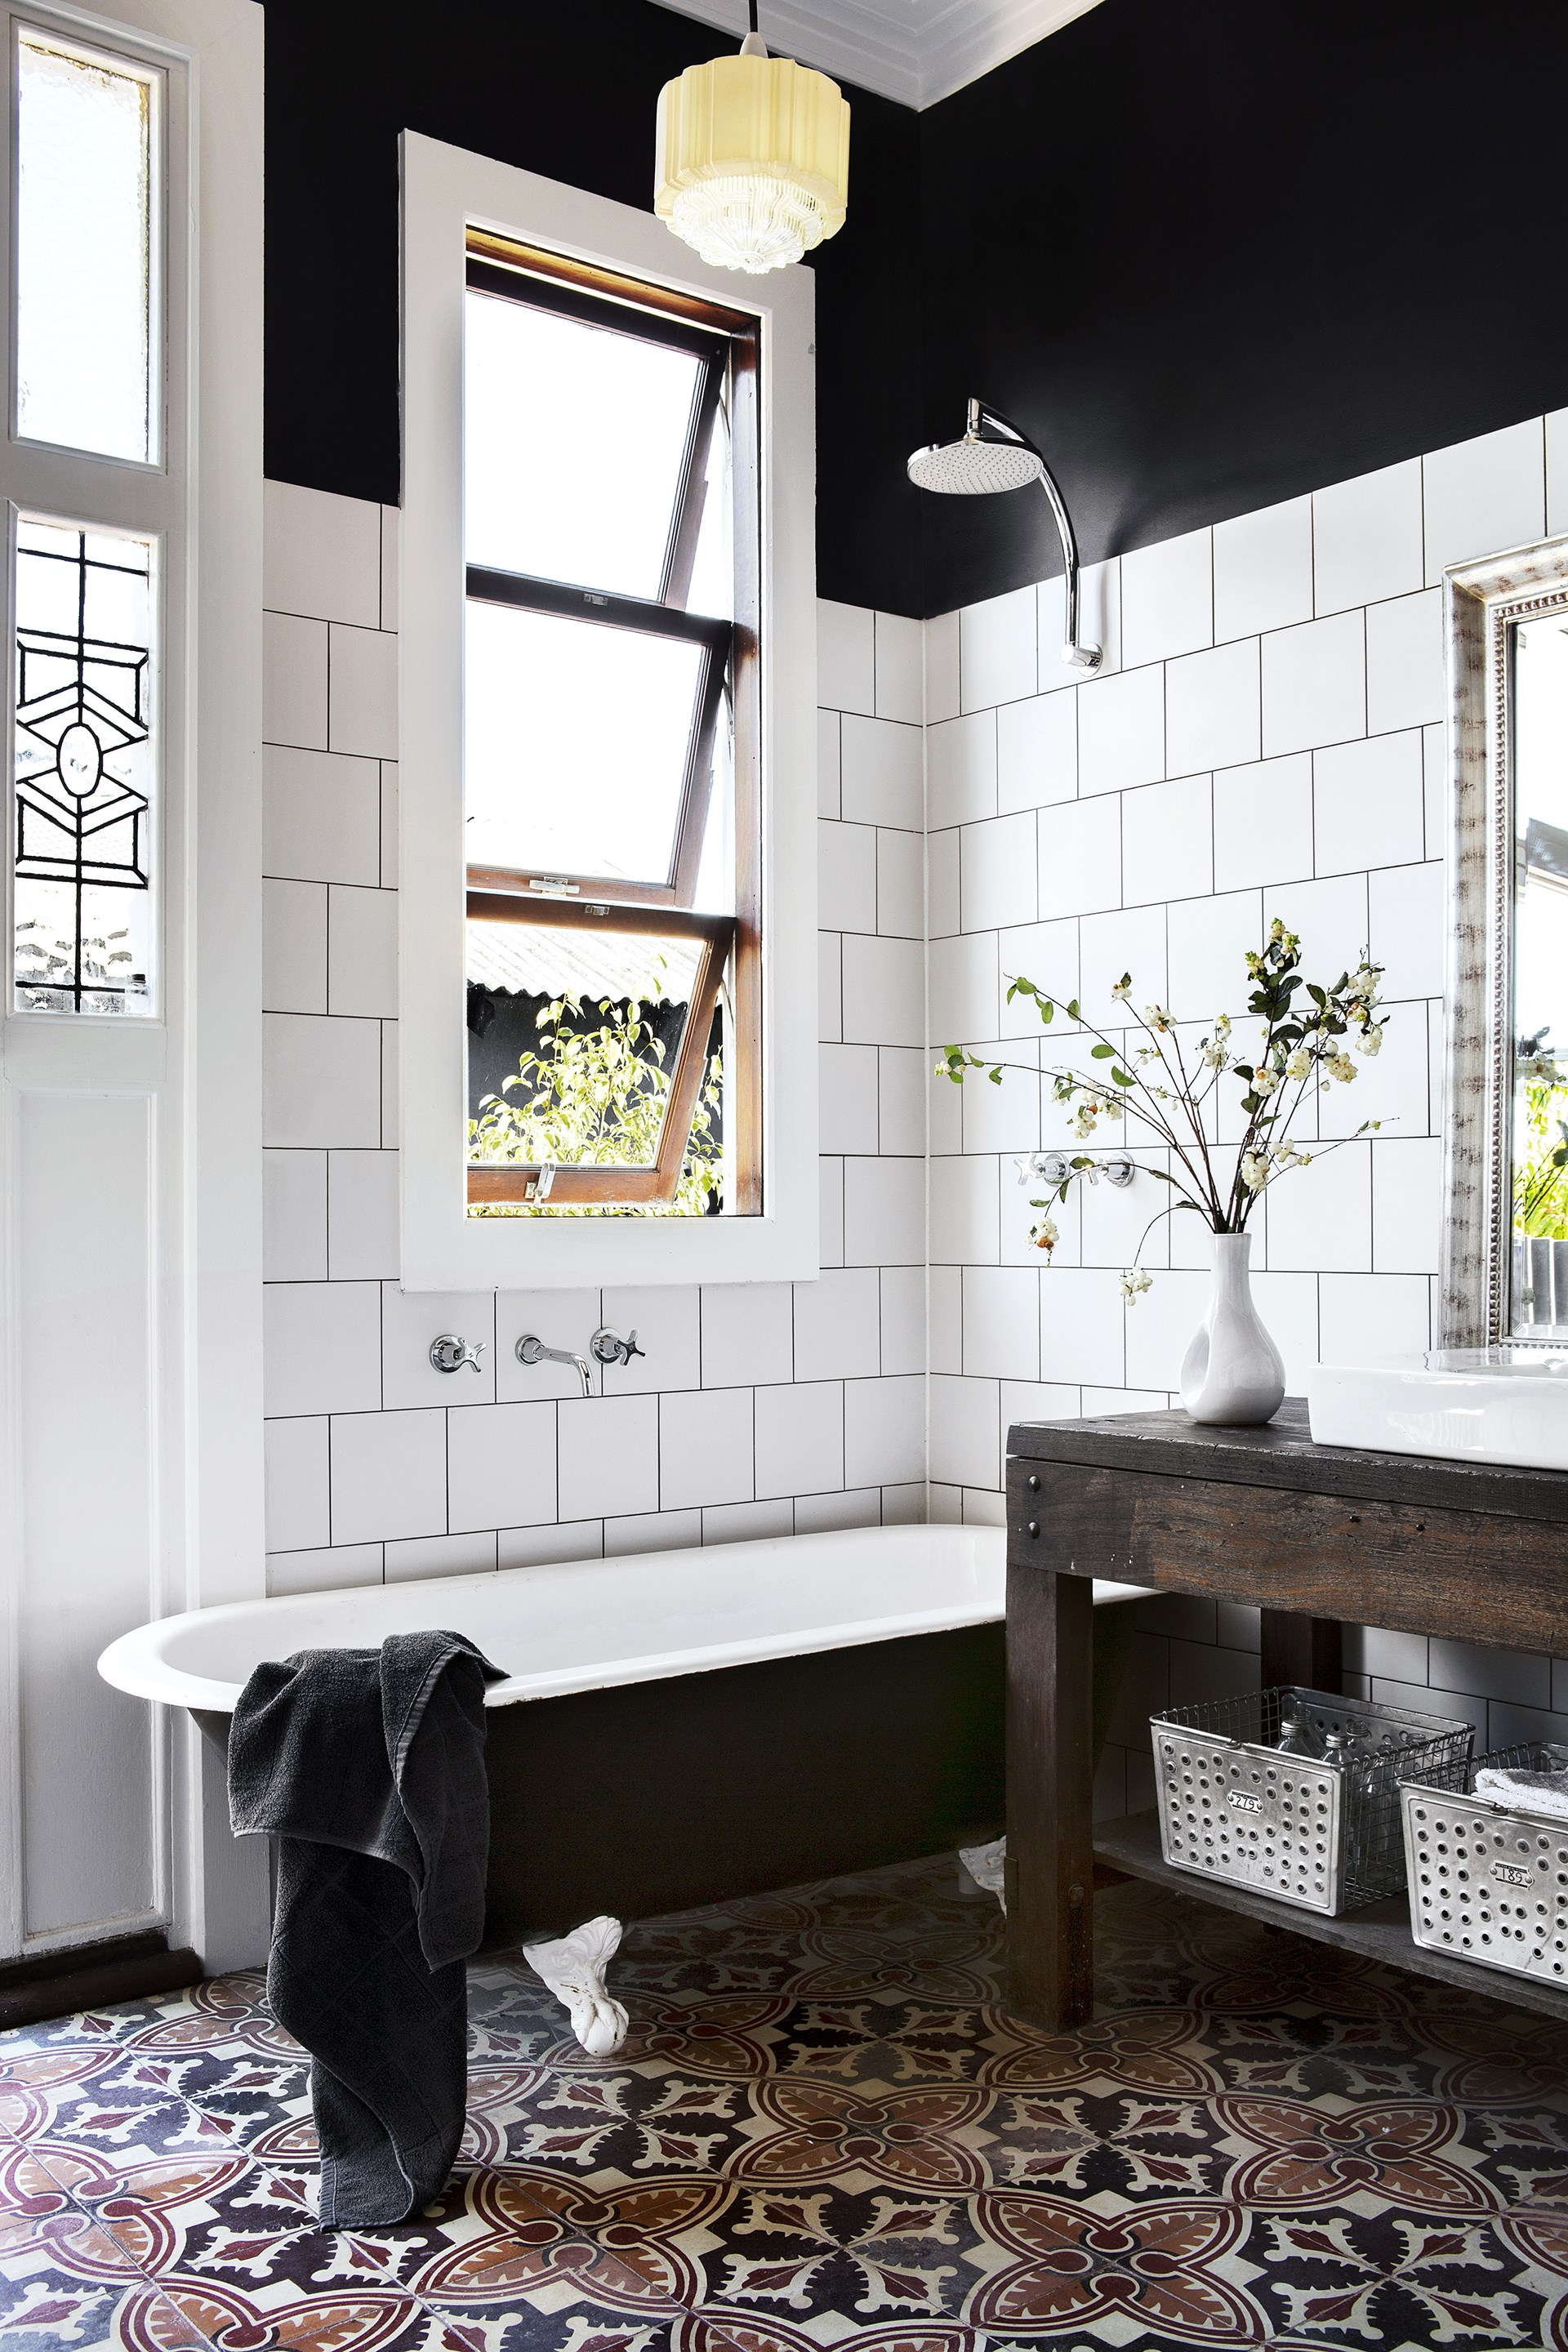 Like the rest of this [historic Perth home](http://www.homestolove.com.au/gallery-carla-and-bens-art-deco-style-new-house-1798) this modern-country style bathroom pays homage to the past and makes extensive use of reclaimed and recycled materials. *Photo: Angelita Bonetti / Australian House & Garden*